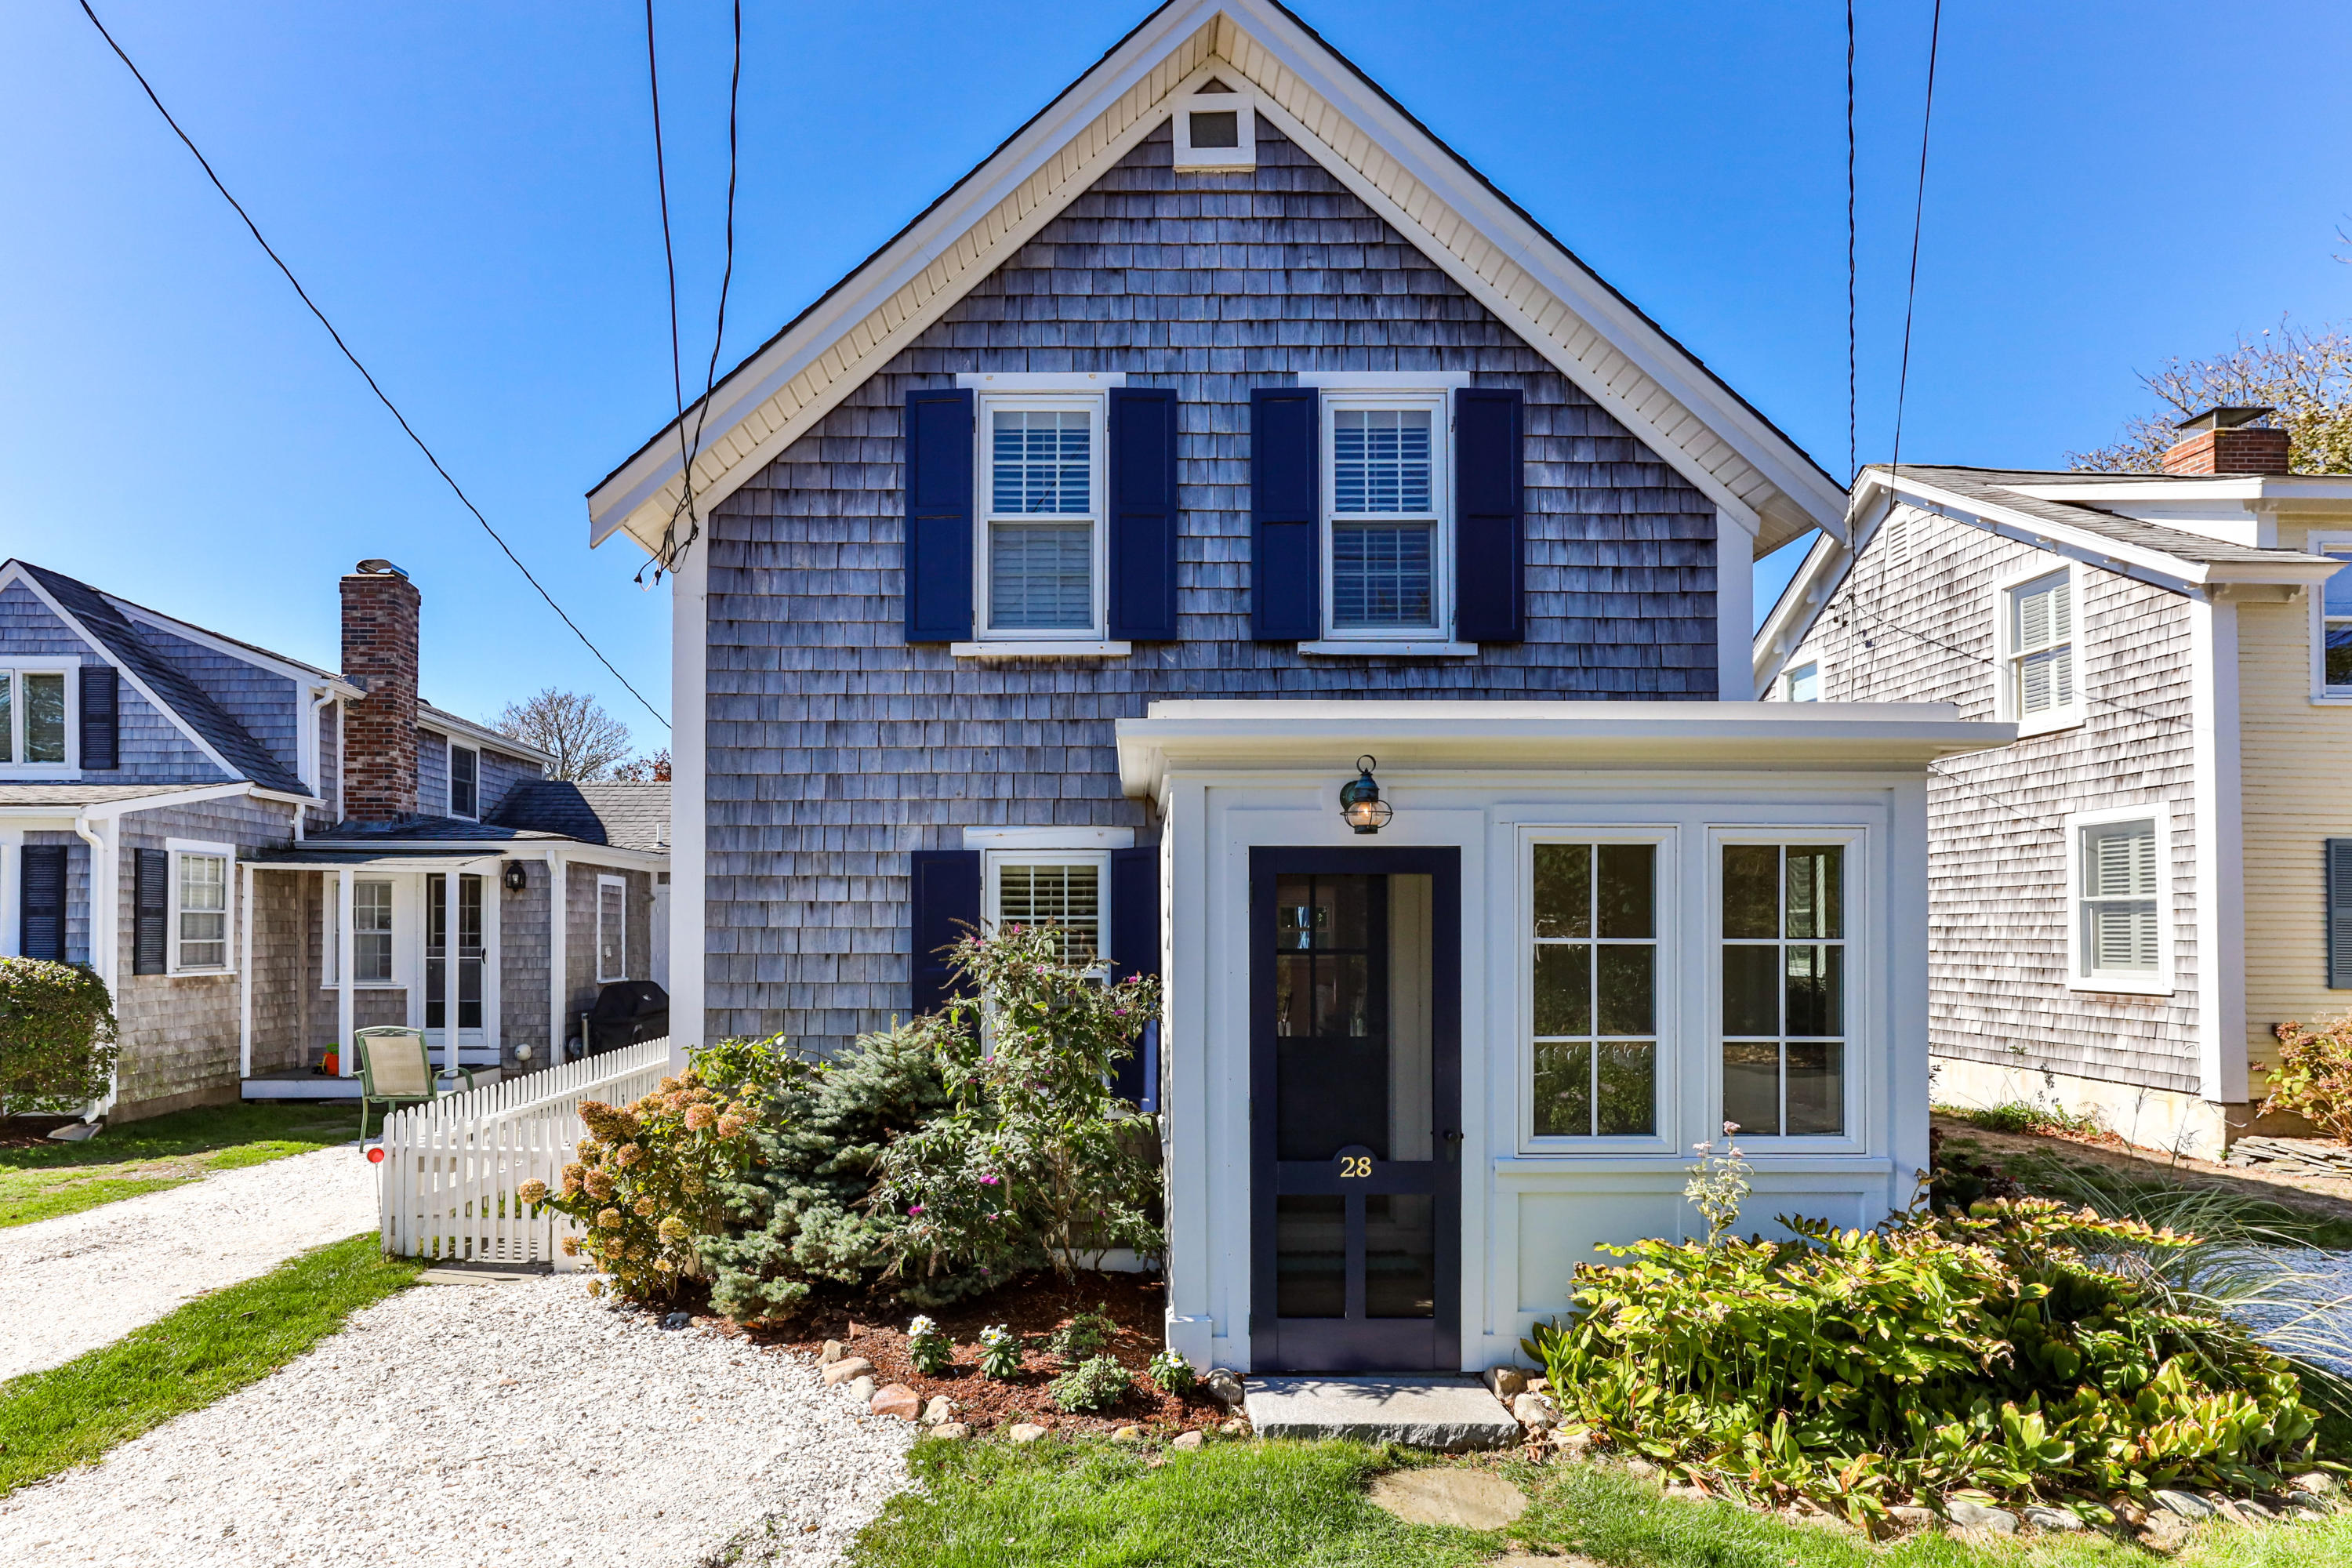 28 Shattuck Place, Chatham, MA details